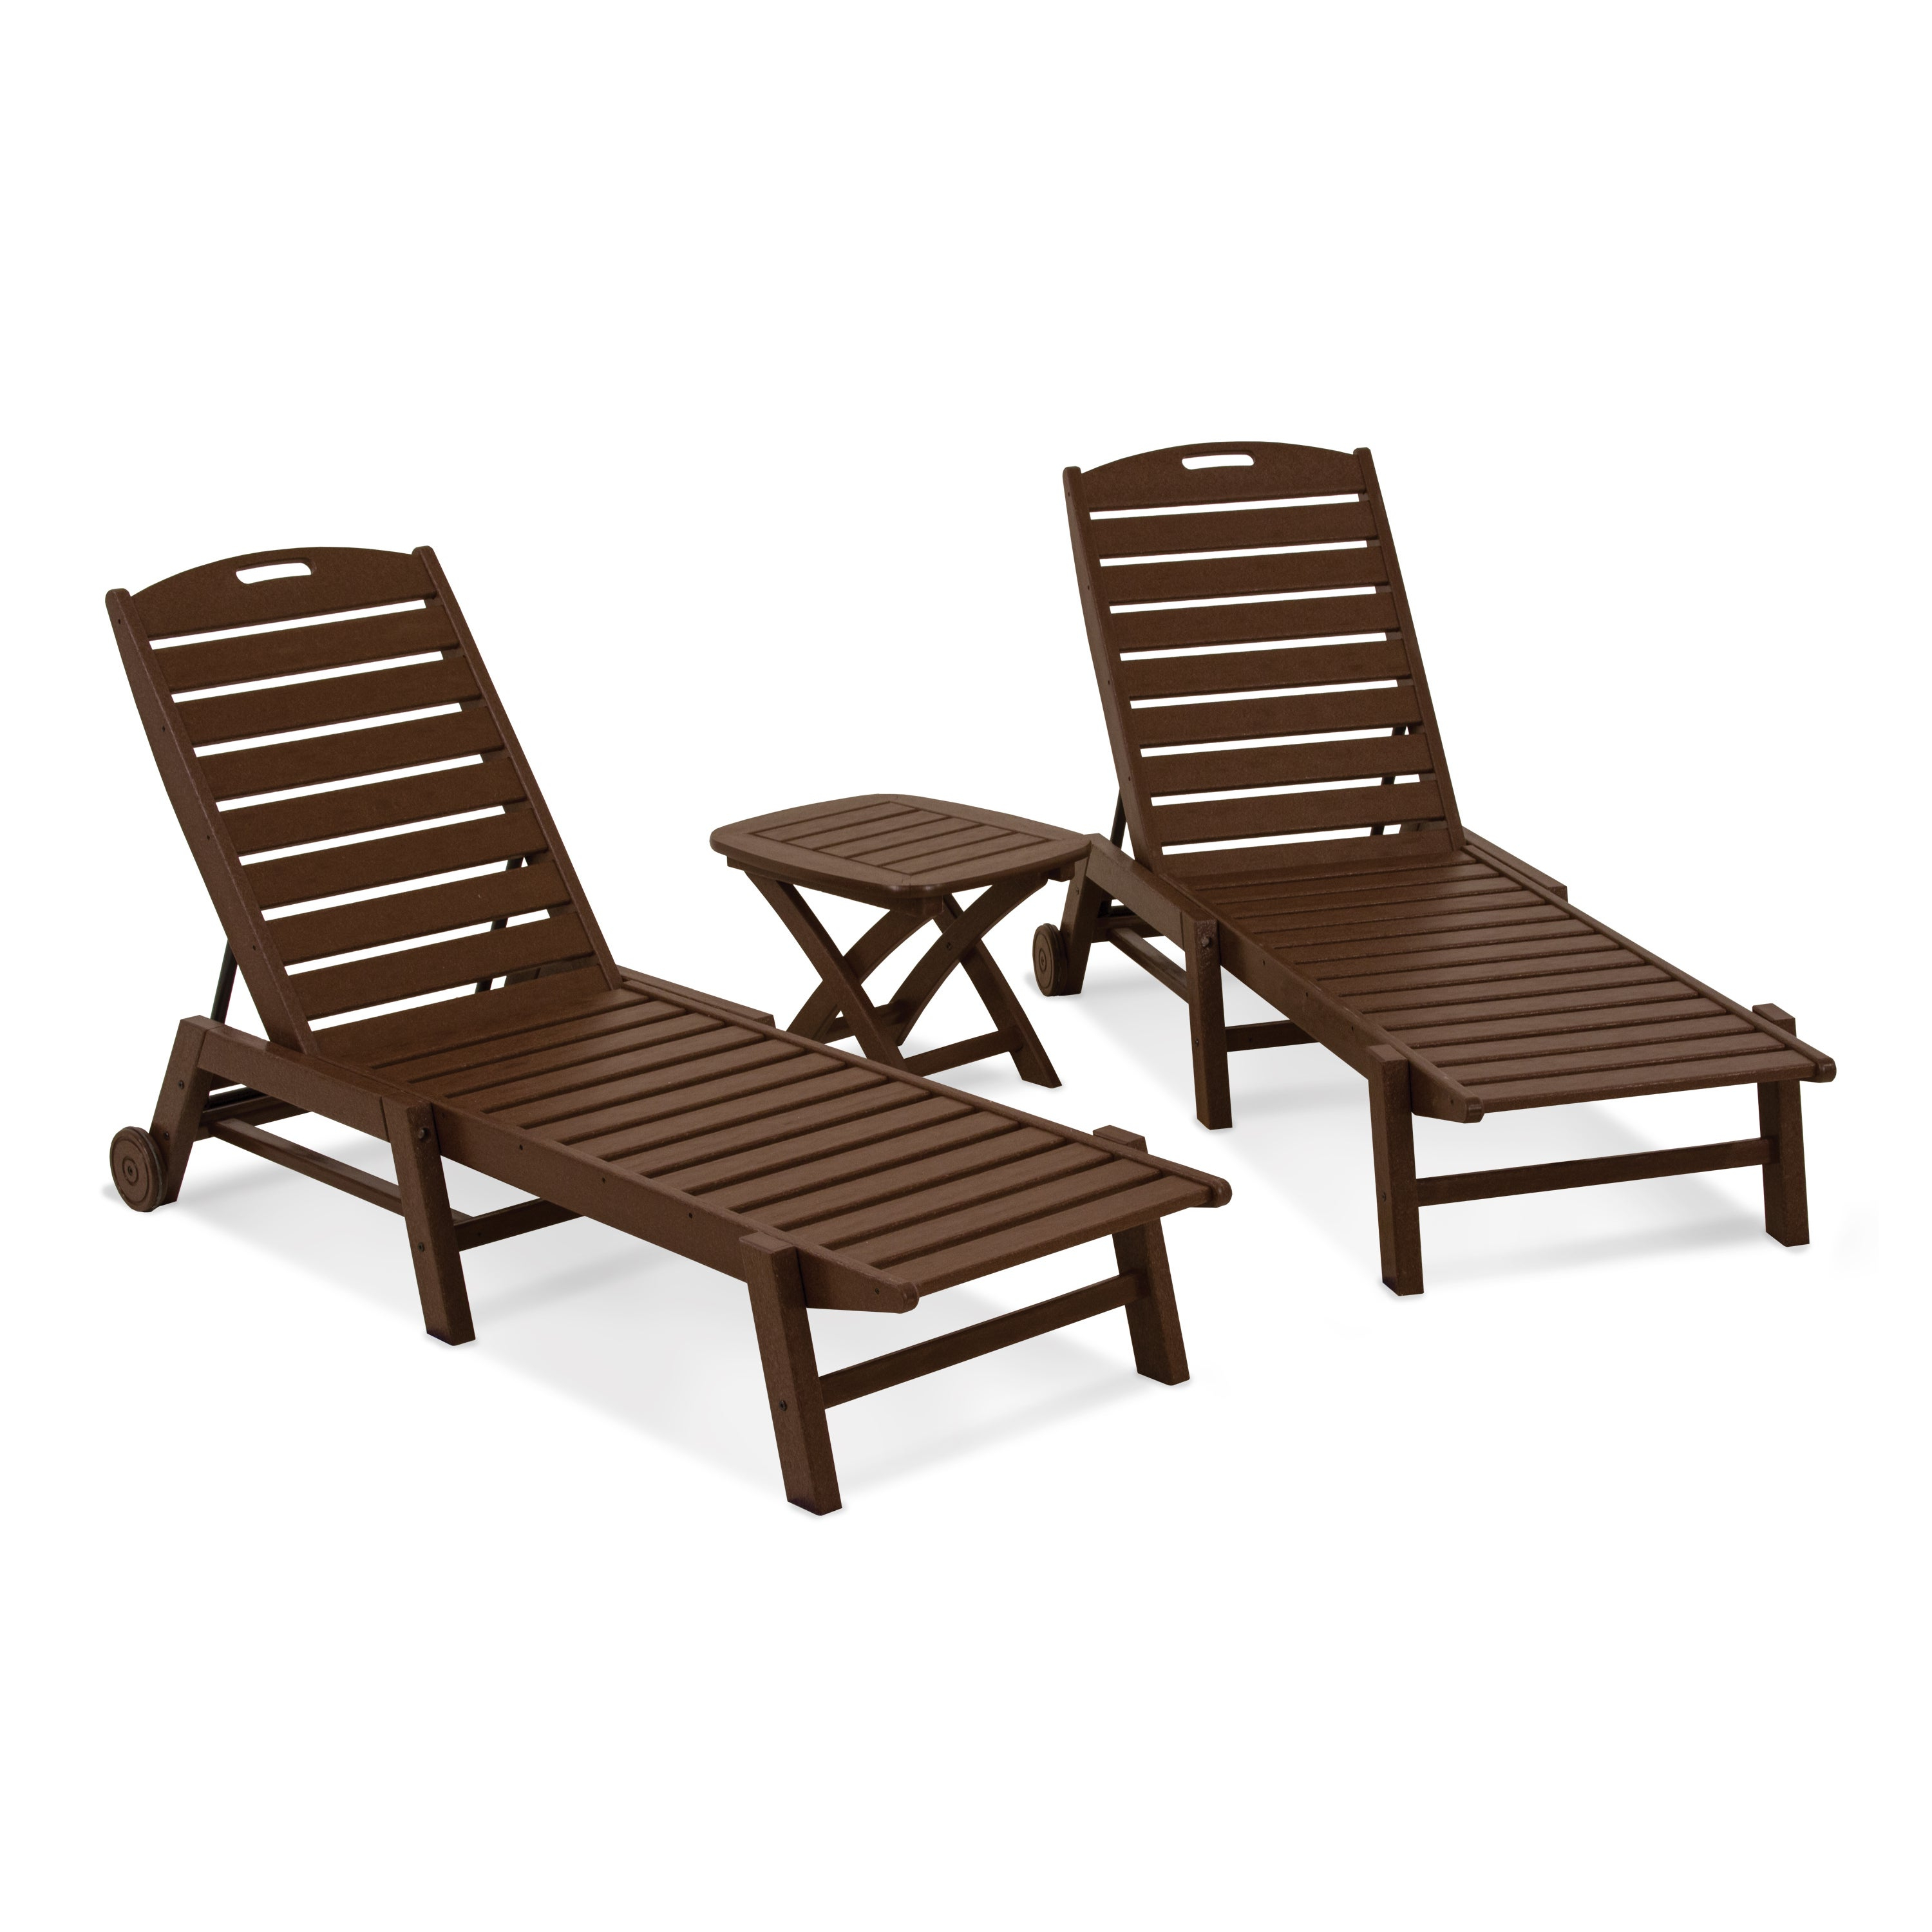 Polywood® Nautical 3 Piece Outdoor Chaise Lounge Set With Table Intended For Most Recent Nautical Wheeled Stackable Chaise Lounges (View 20 of 25)